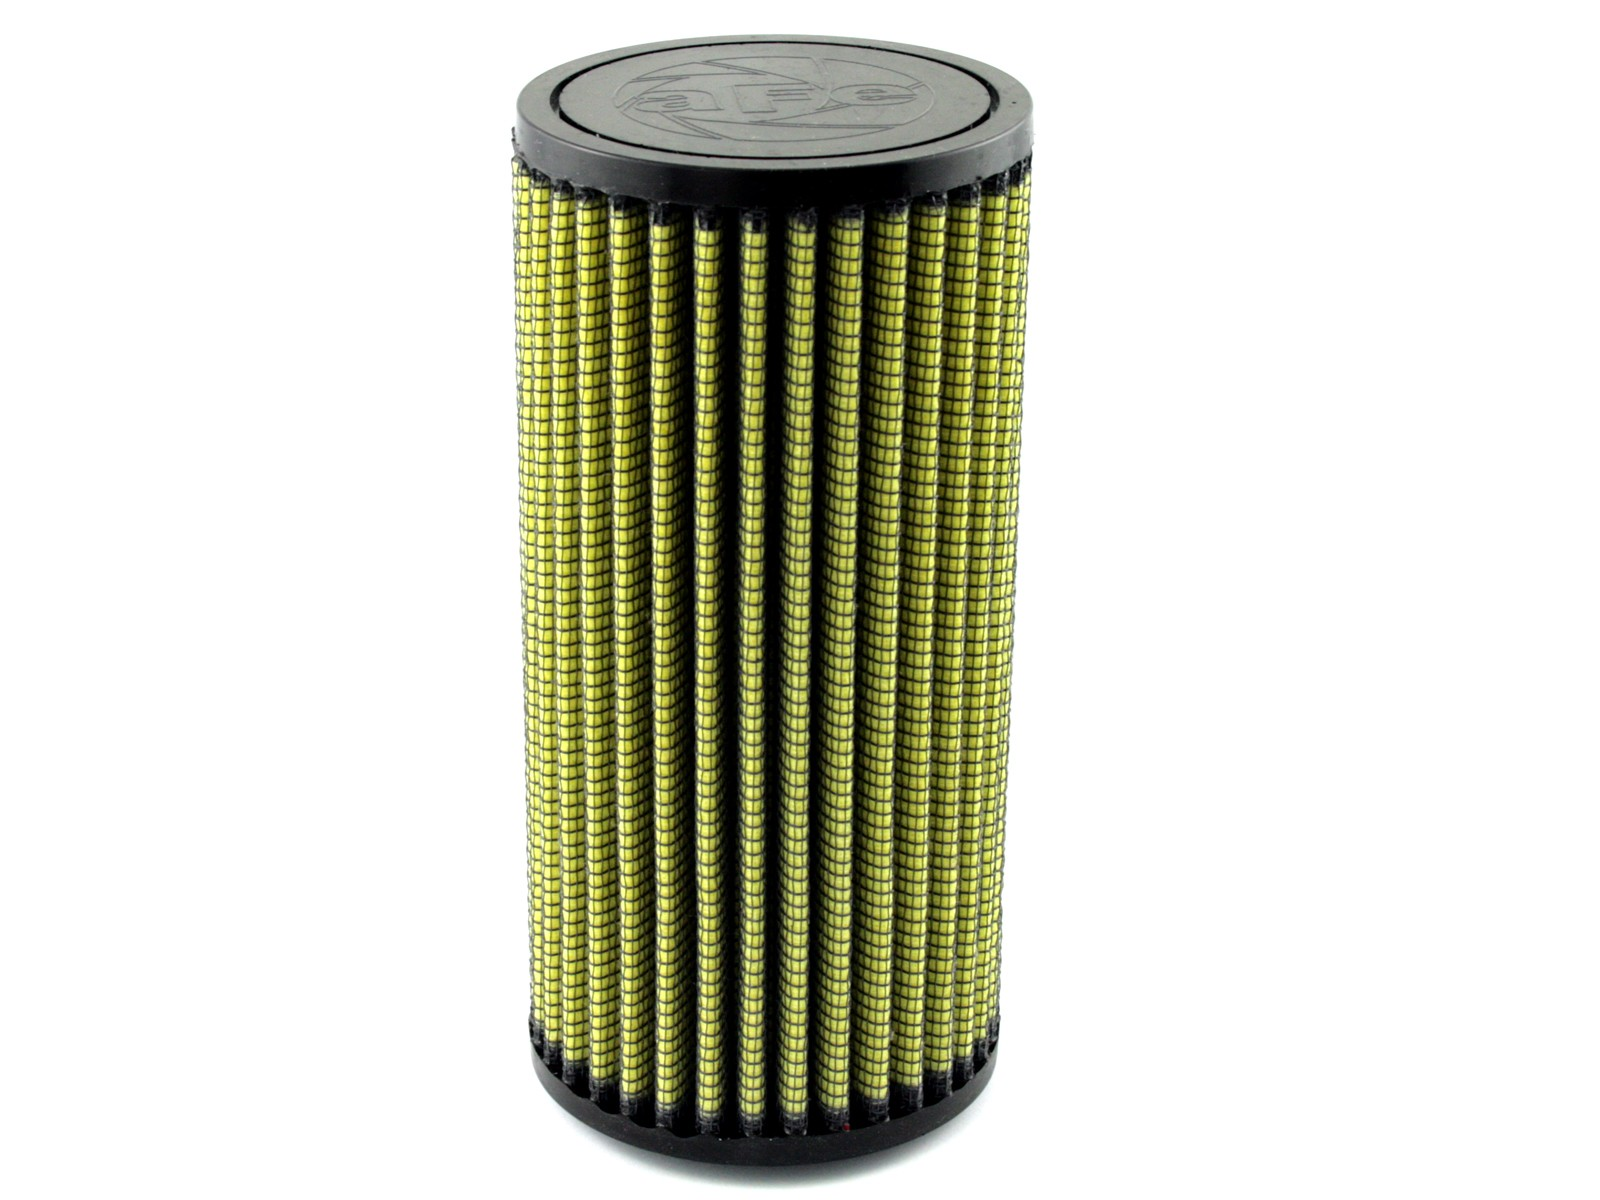 aFe POWER 87-10014 Aries Powersports Pro GUARD7 Air Filter